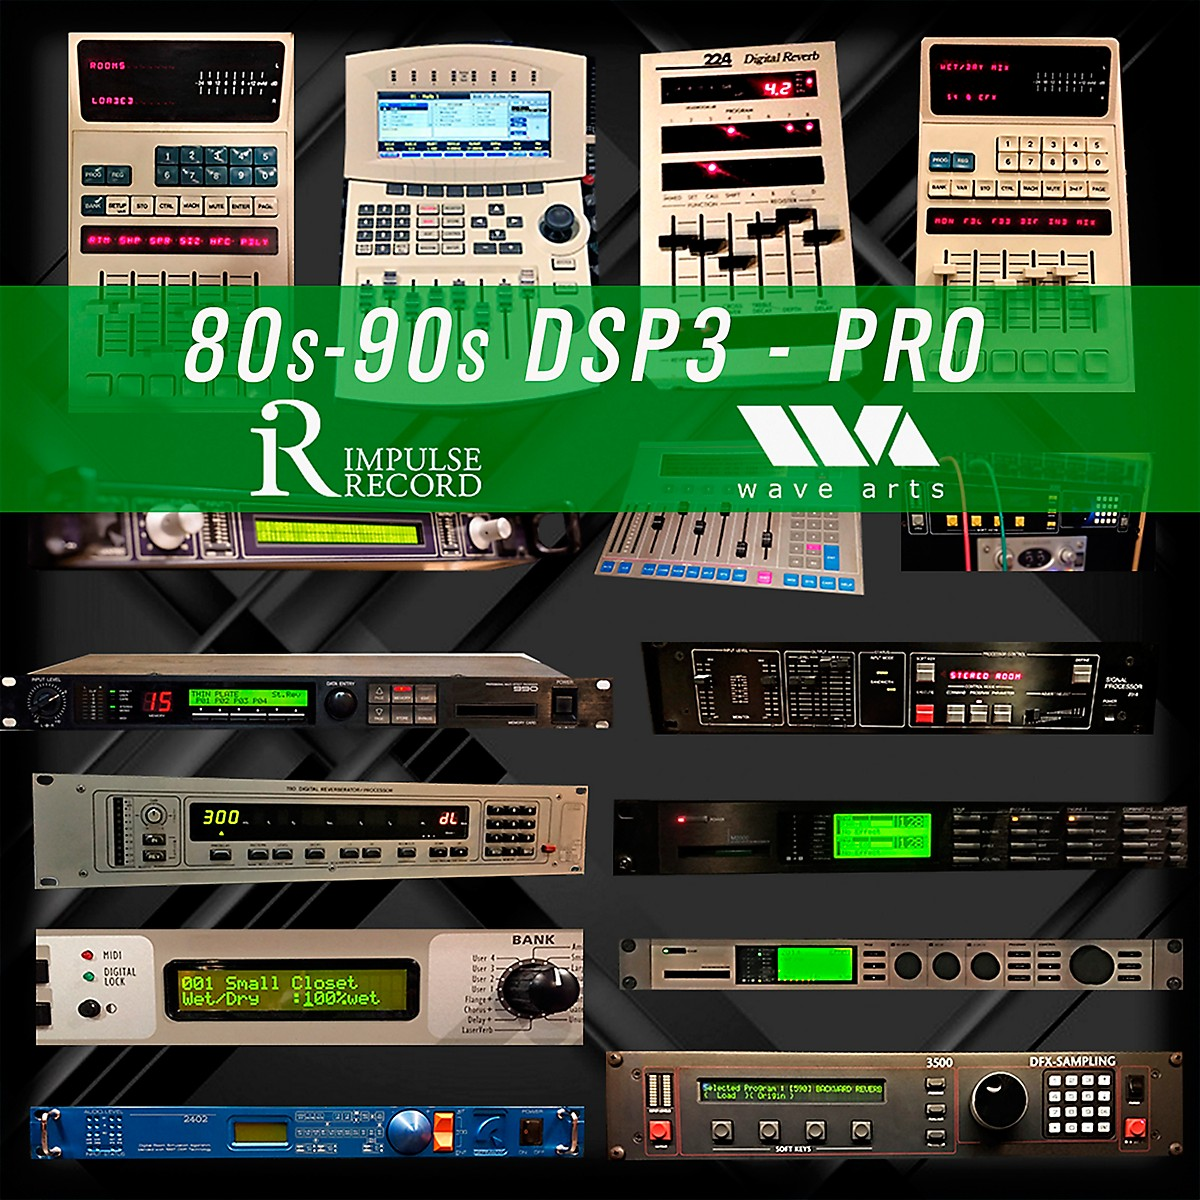 Impulse Record 80s & 90s DSP3 Gear